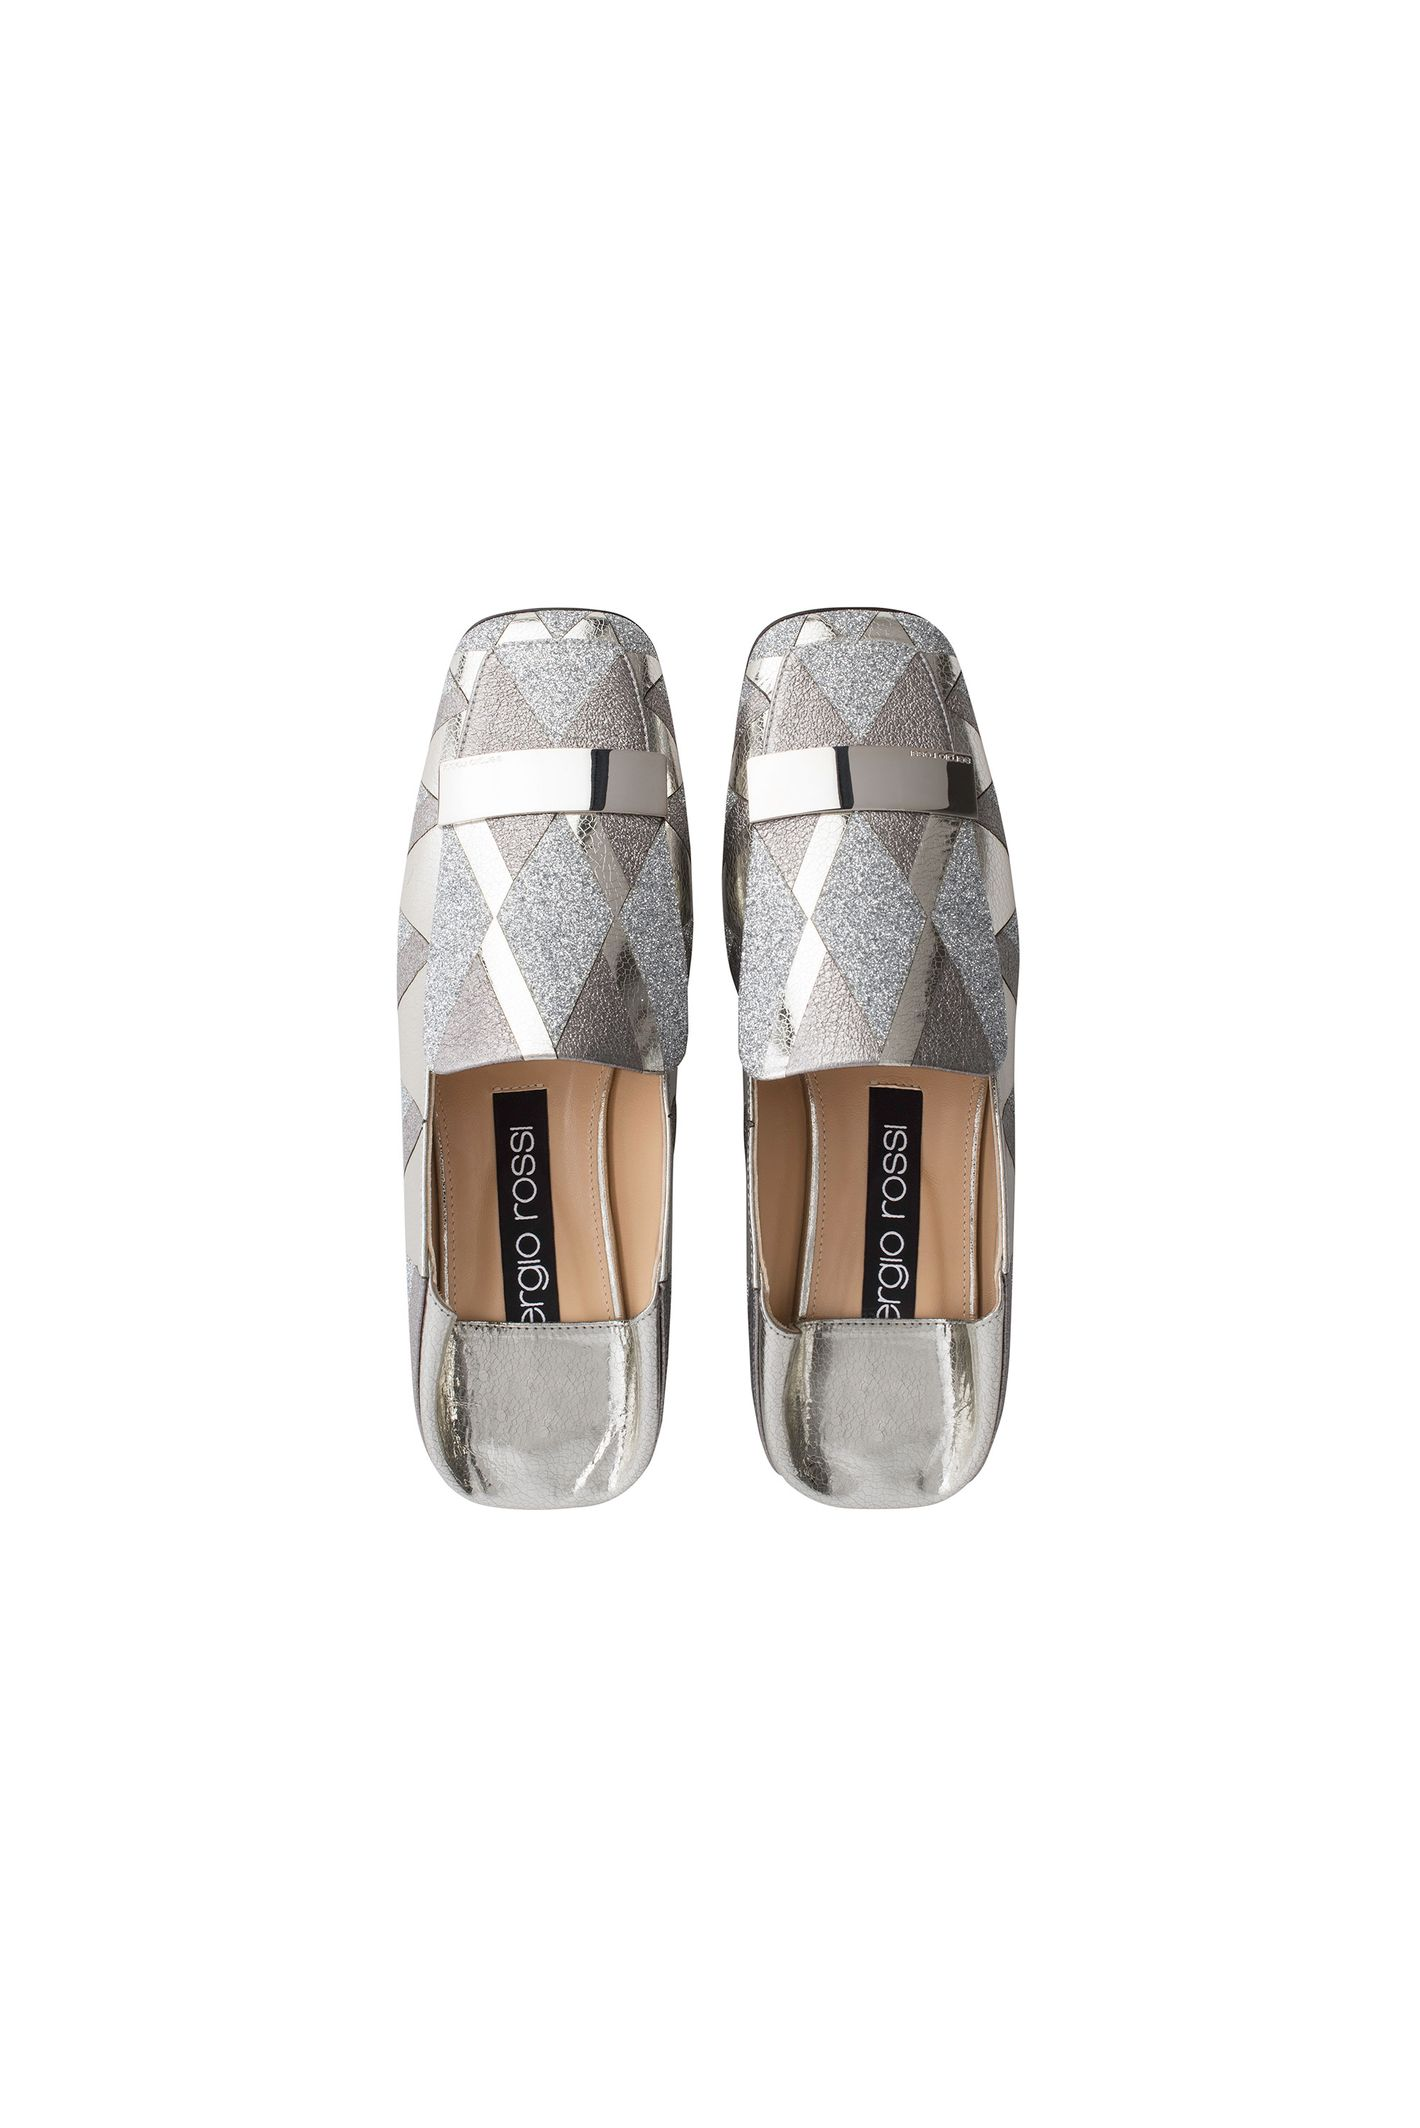 Slipper in Silver Glitter and Laminated Leather